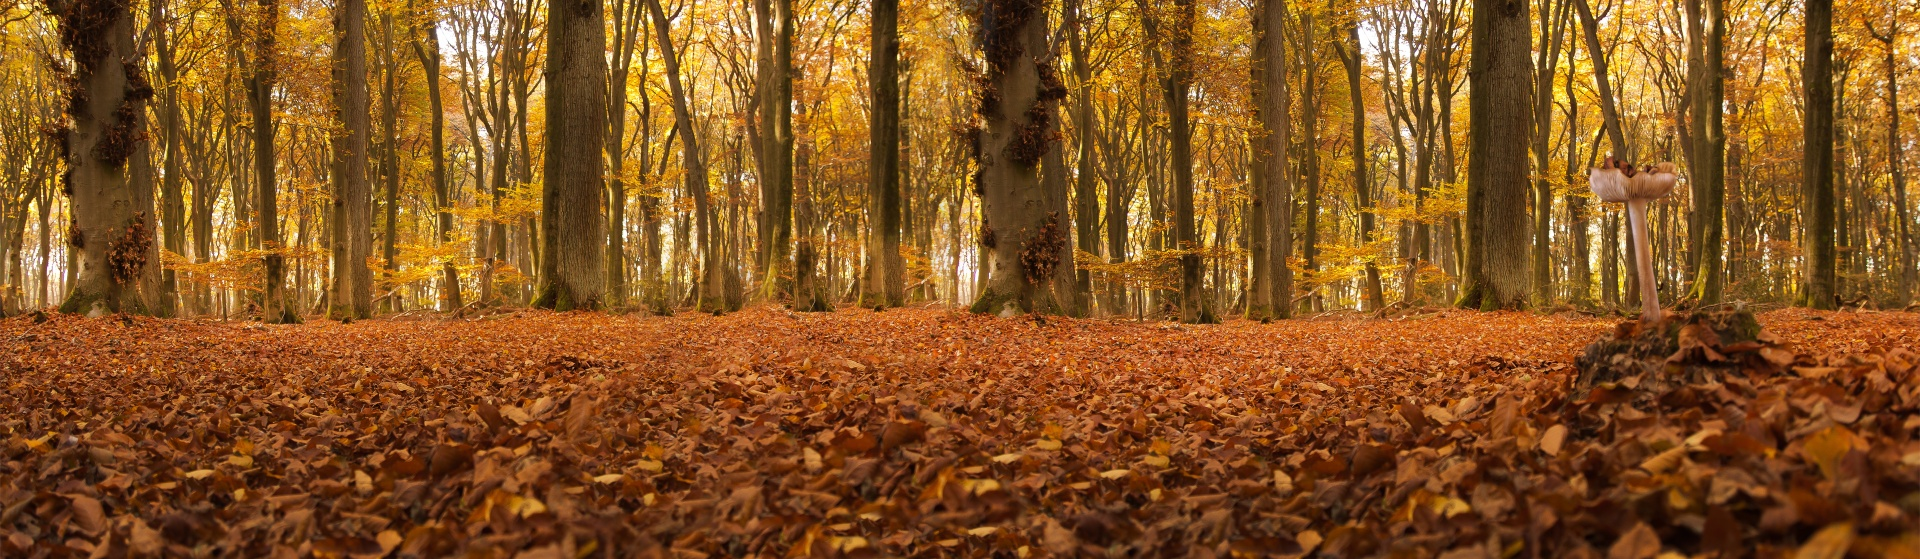 Fall Of The Autumn Hd Wallpaper Autumn Forest Panorama Free Stock Photo Public Domain